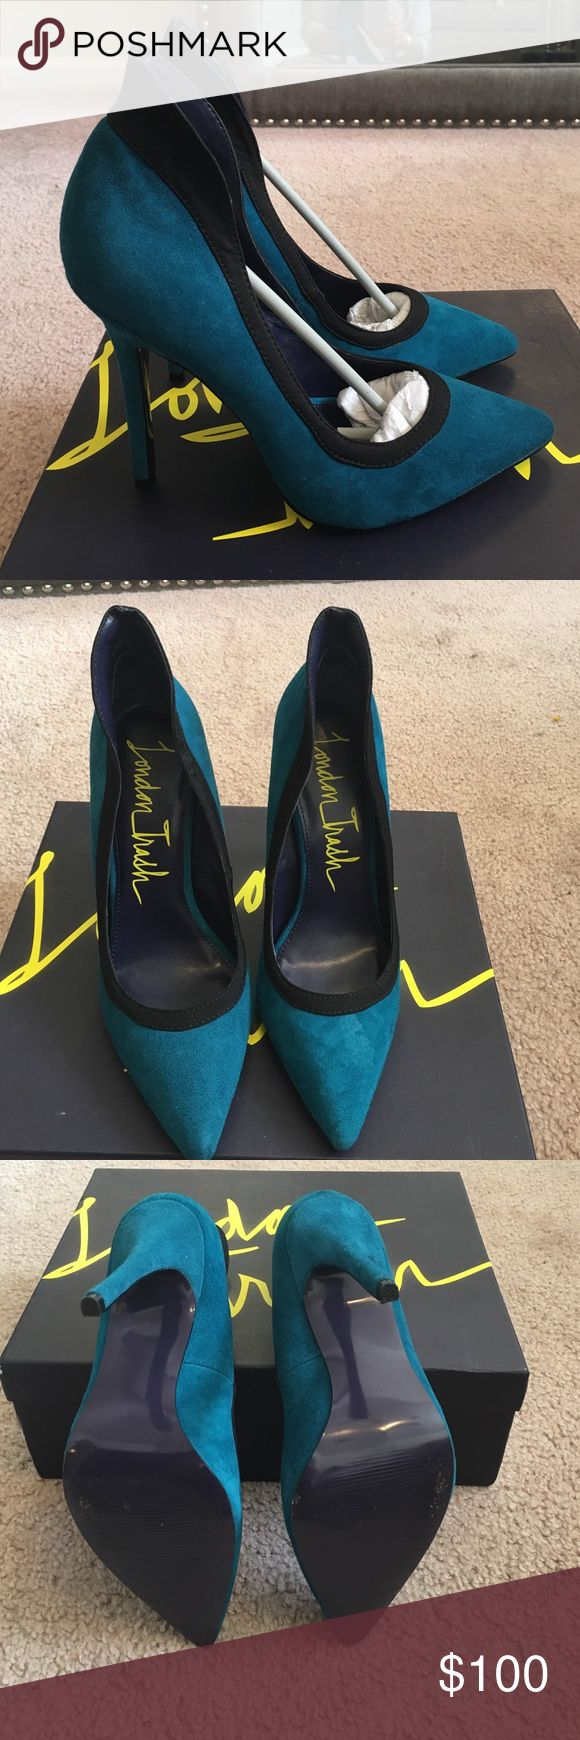 London Trash Shoes (pumps) London Trash pumps. I absolutely love these pumps but because I have narrow heels they don't stay on my feet good. I have only worn these twice (on carpeted area).  These pumps are definitely eye catching! London Trash Shoes Heels